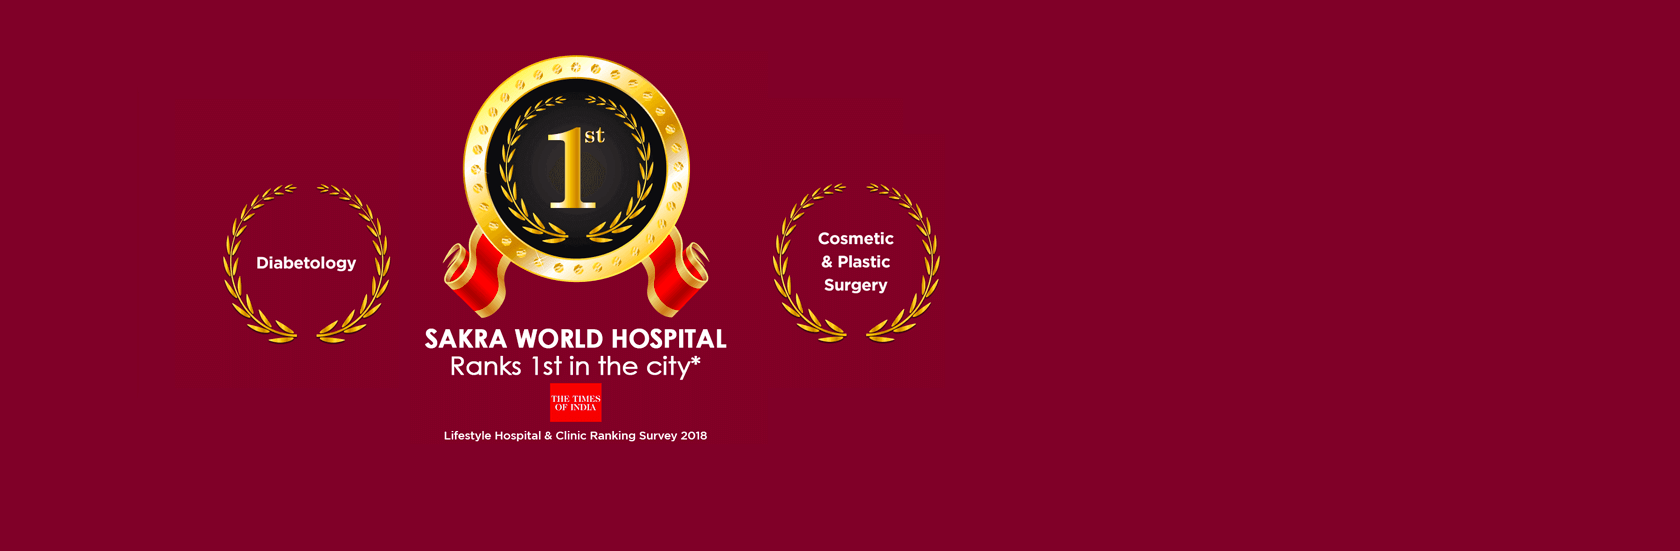 Best Multispeciality Hospital in Bangalore India | Super